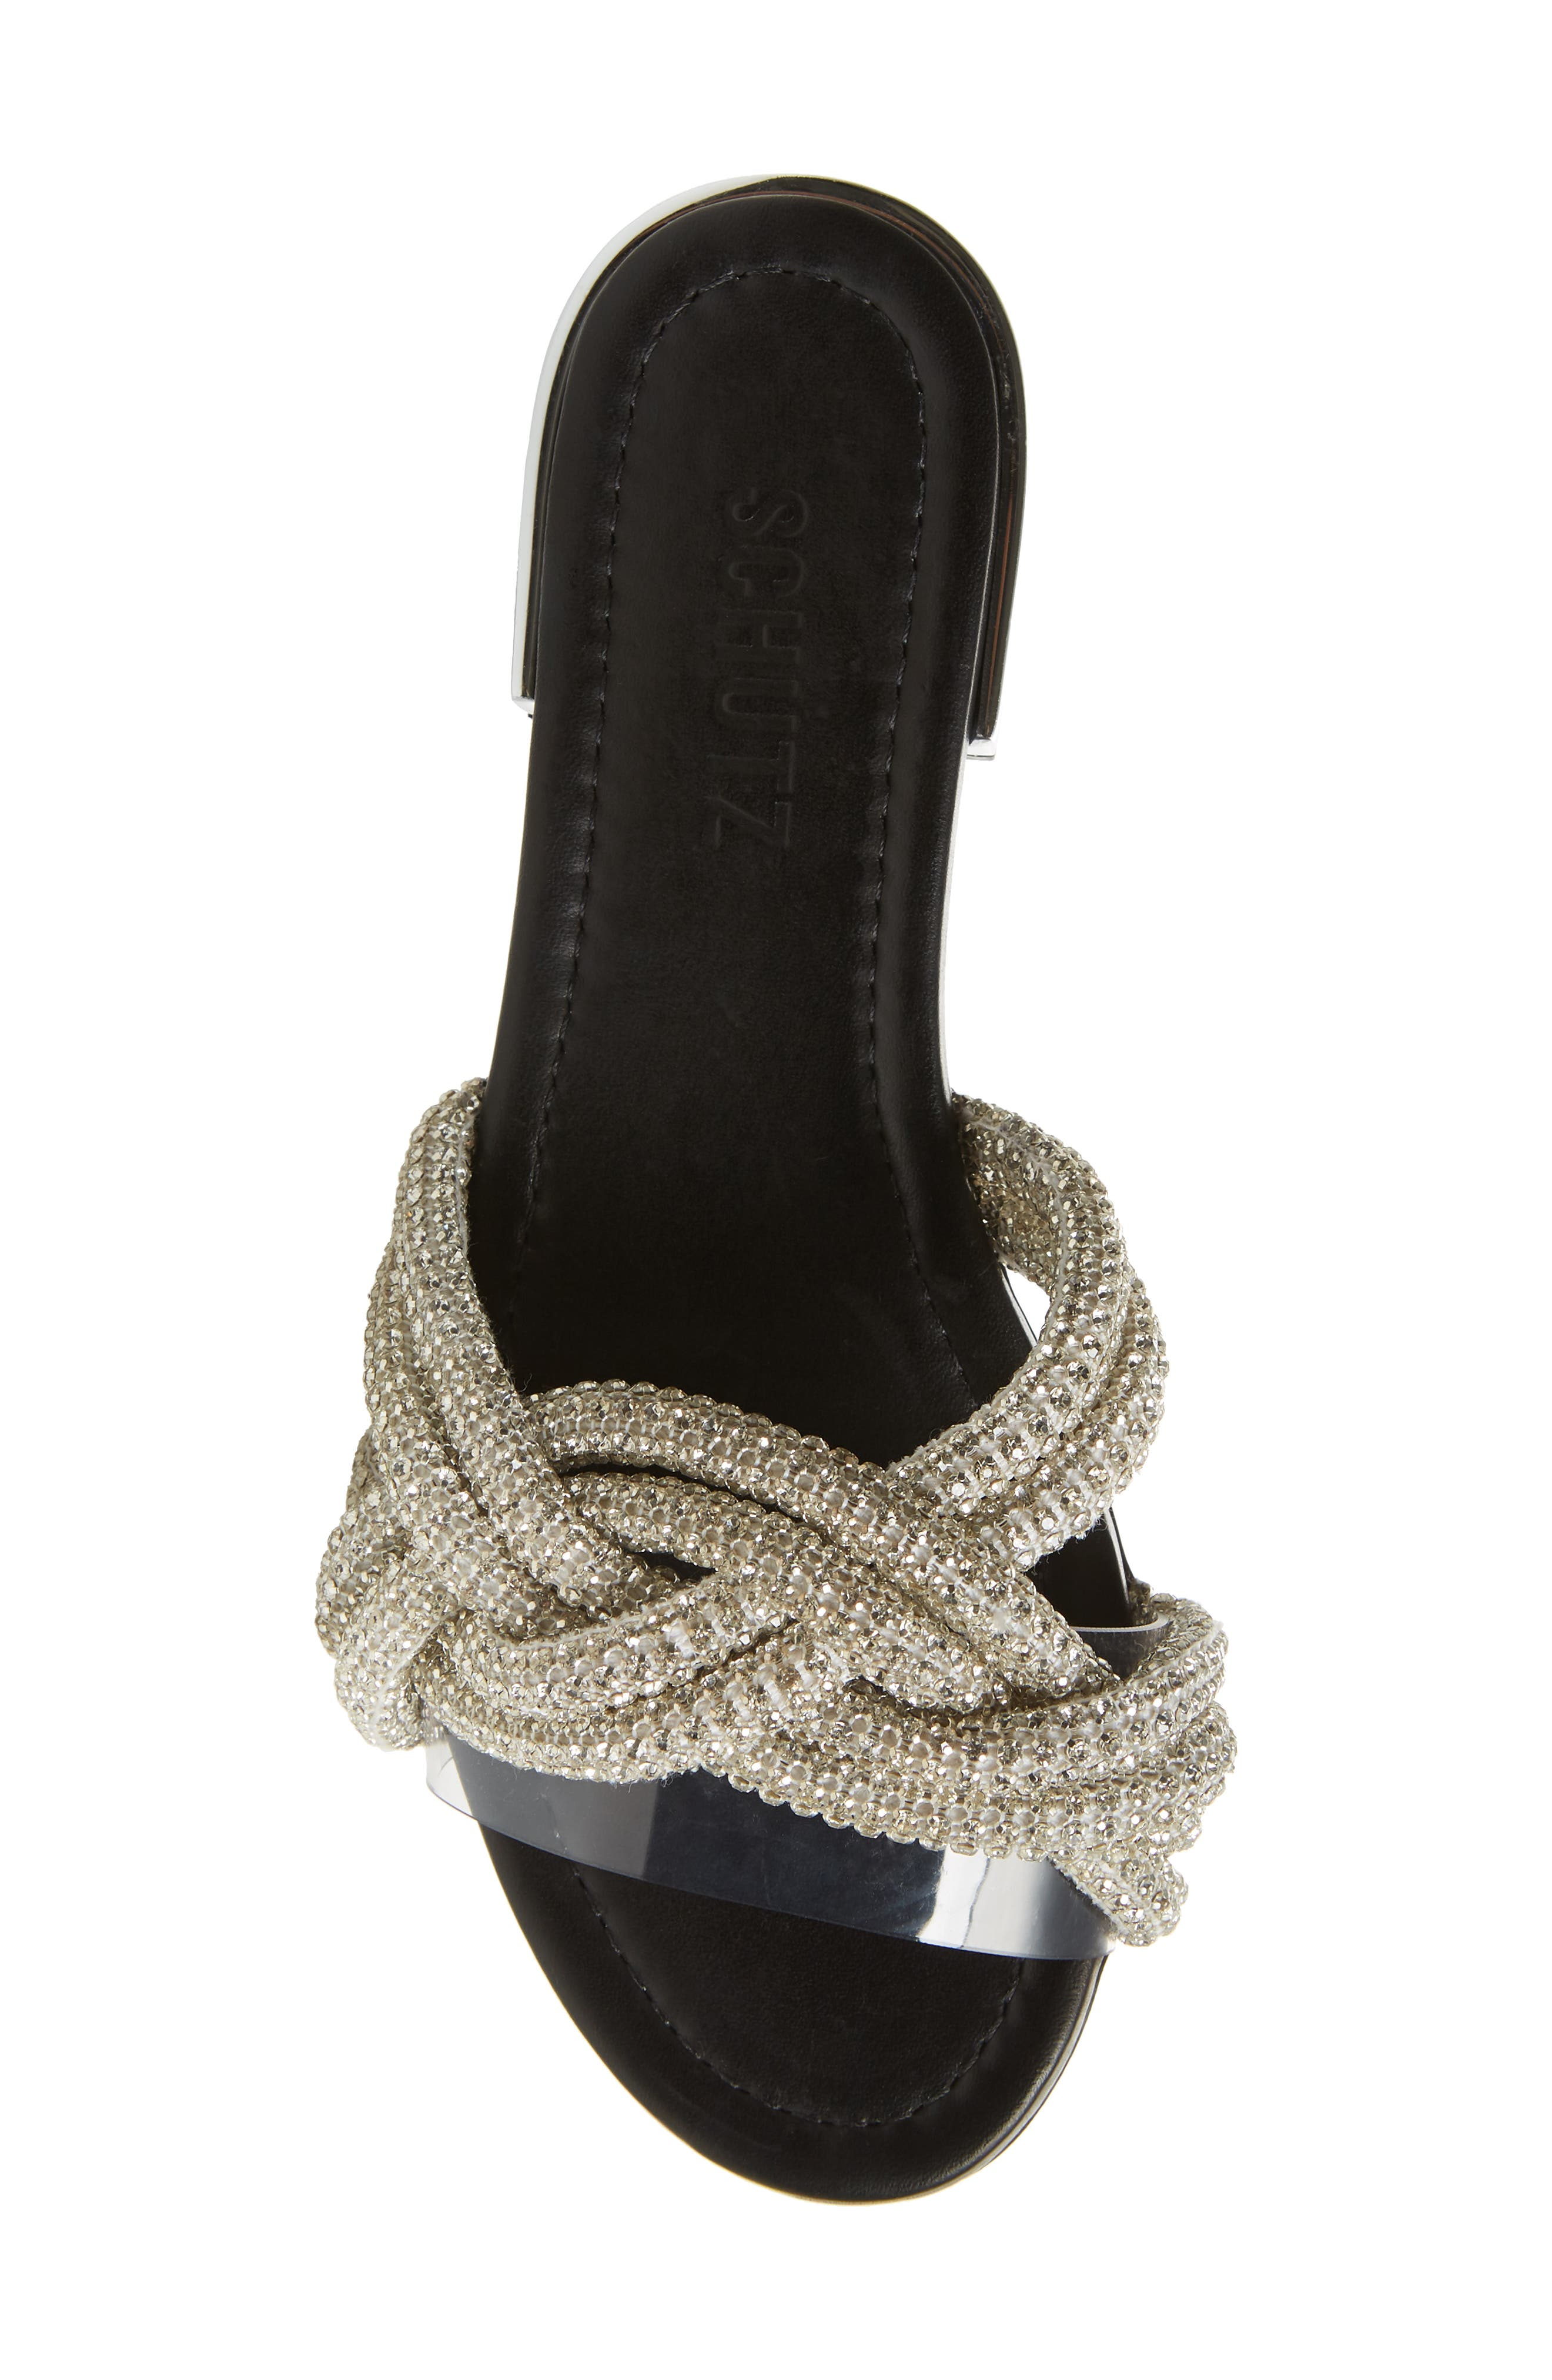 Lindy Braided Slide Sandal,                             Alternate thumbnail 5, color,                             SILVER METALLIC